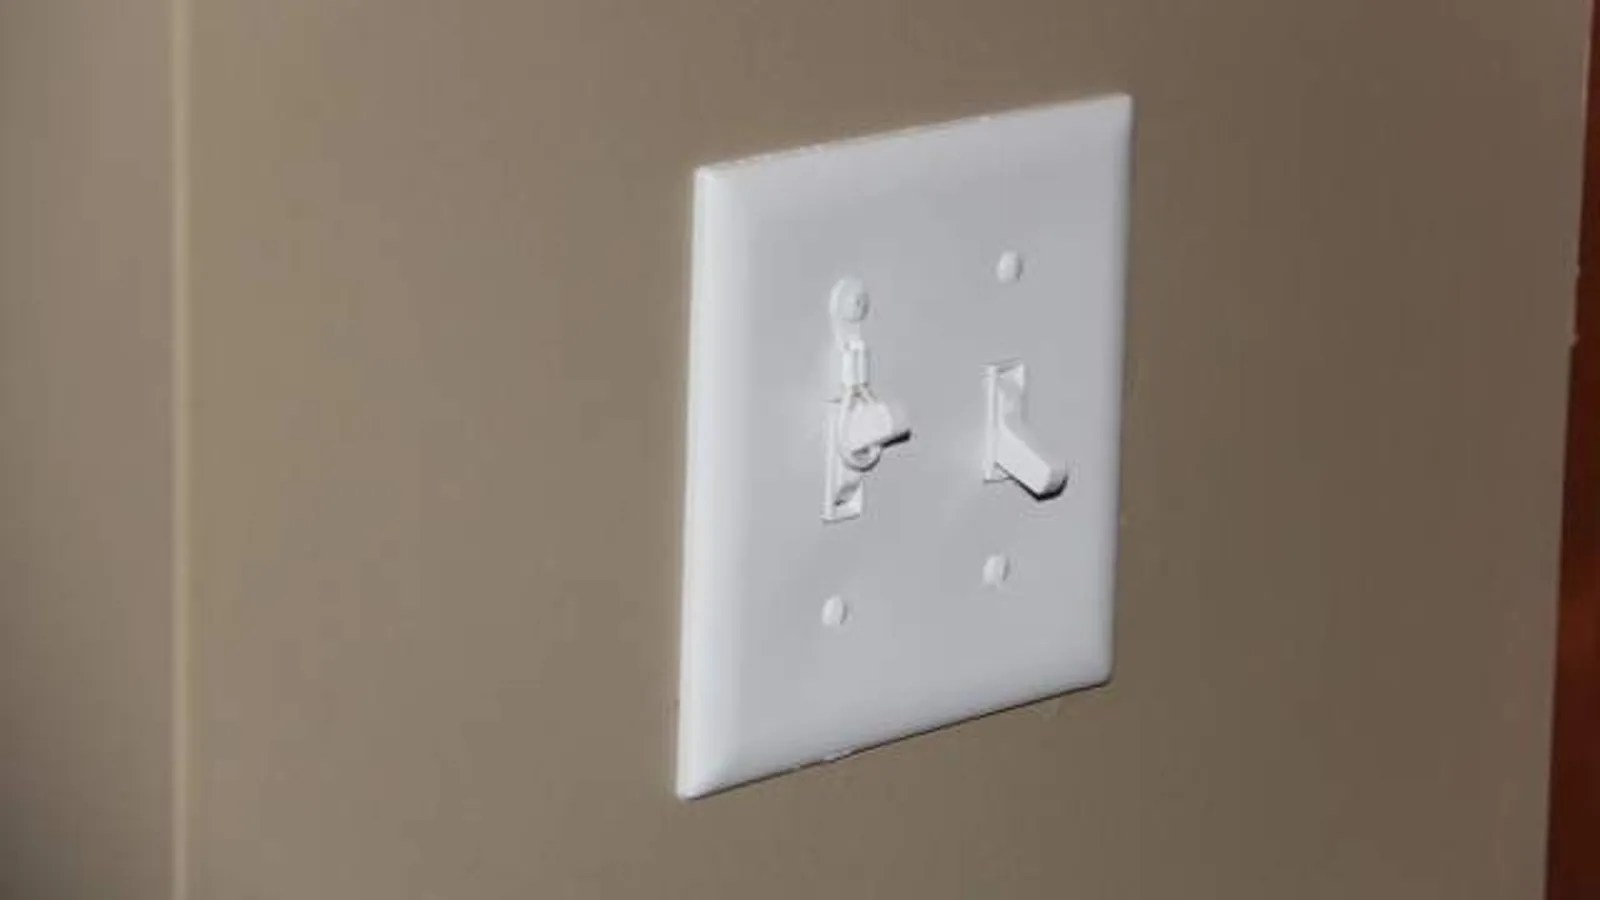 Electrical Outlet Wiring Light Switch Outlet Wiring